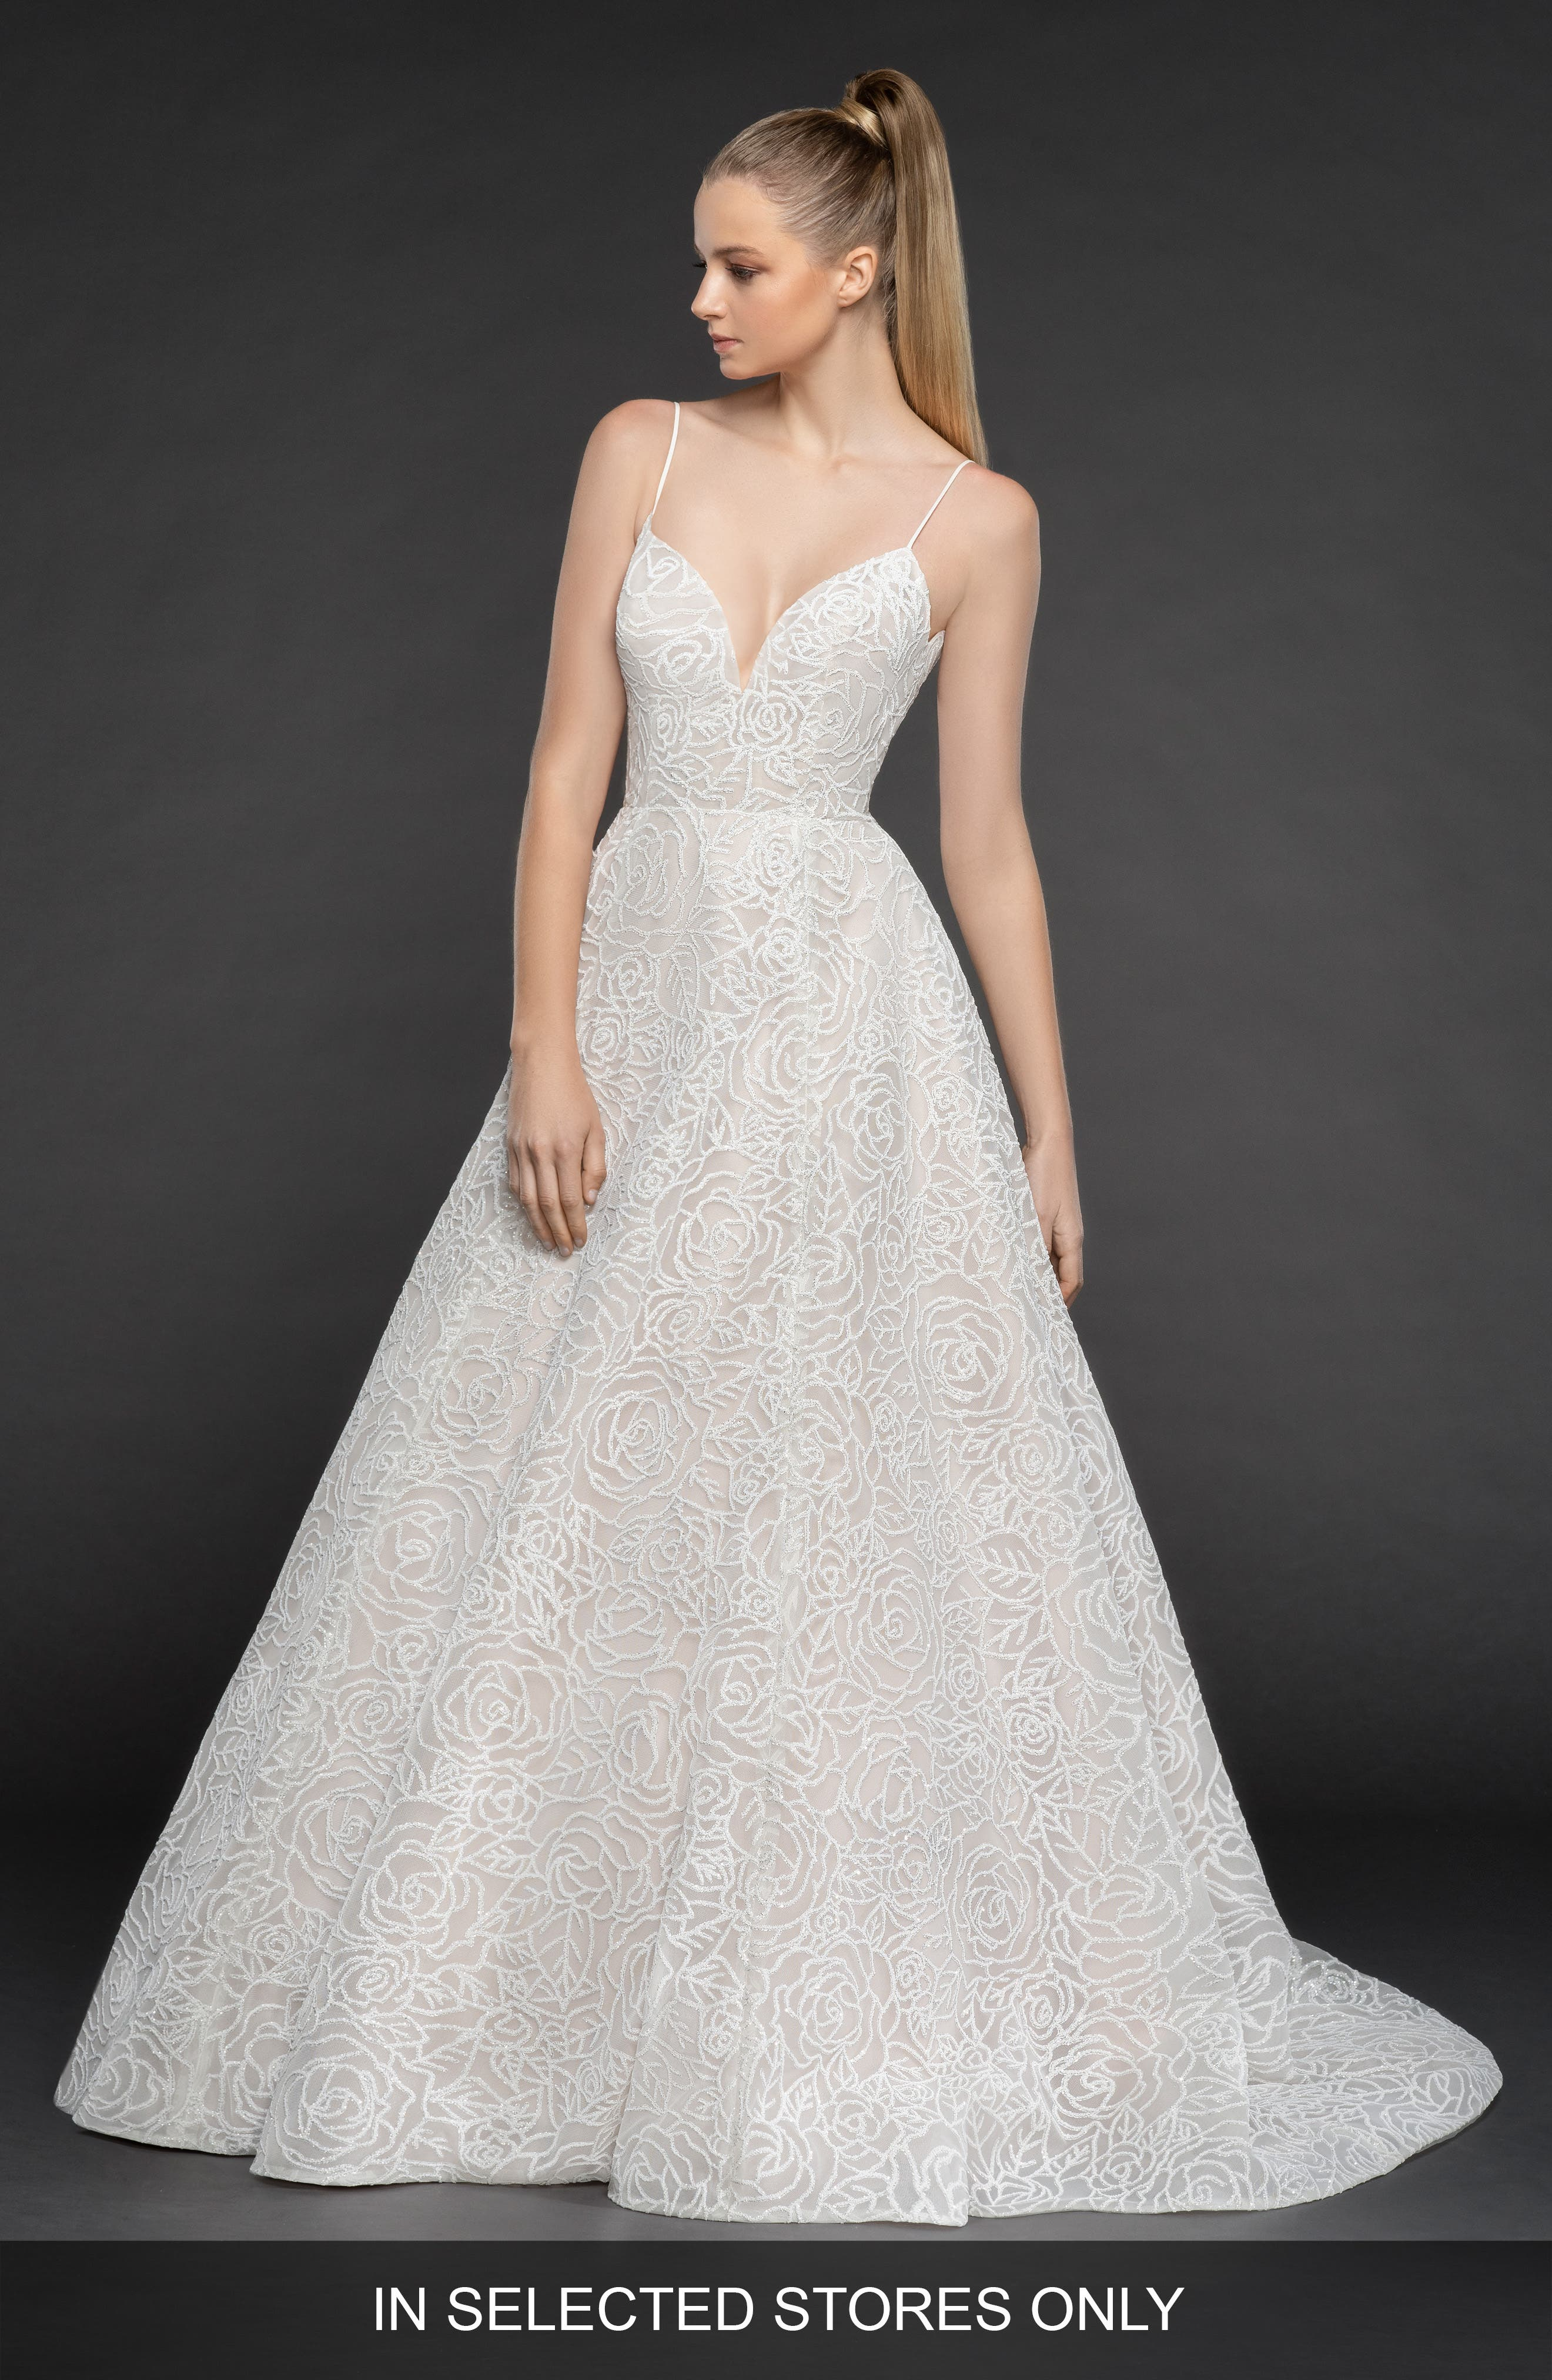 Blush By Hayley Paige Jardin Ballgown, Size IN STORE ONLY - Beige